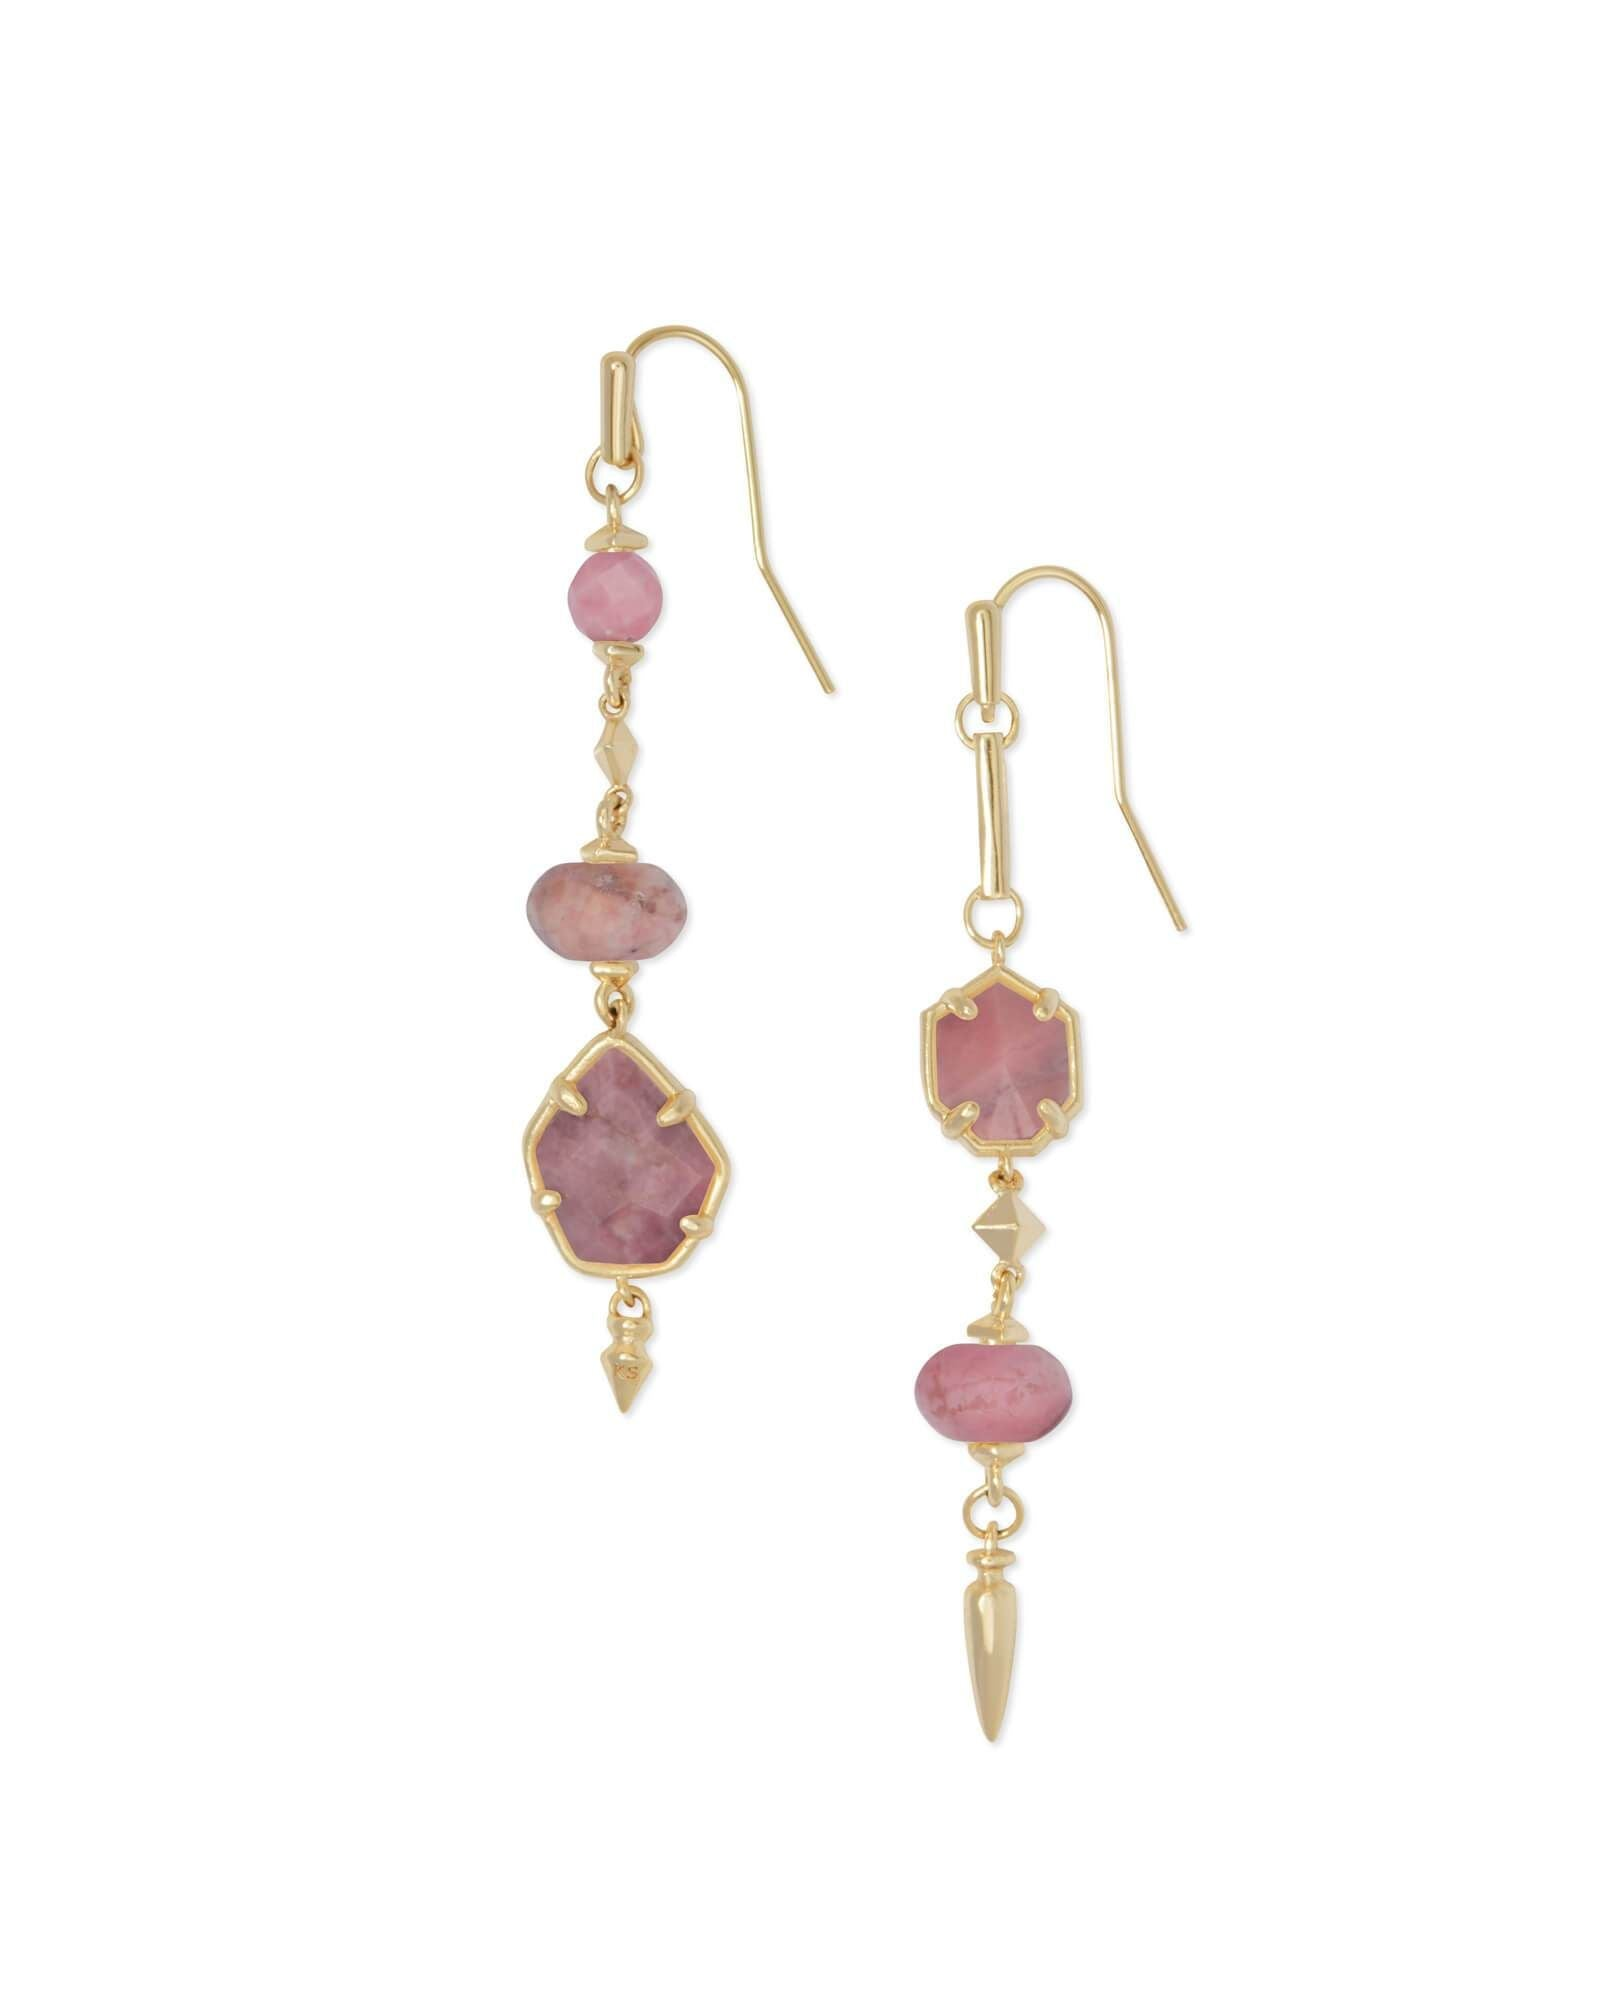 RHYS GOLD/PINK EARRINGS